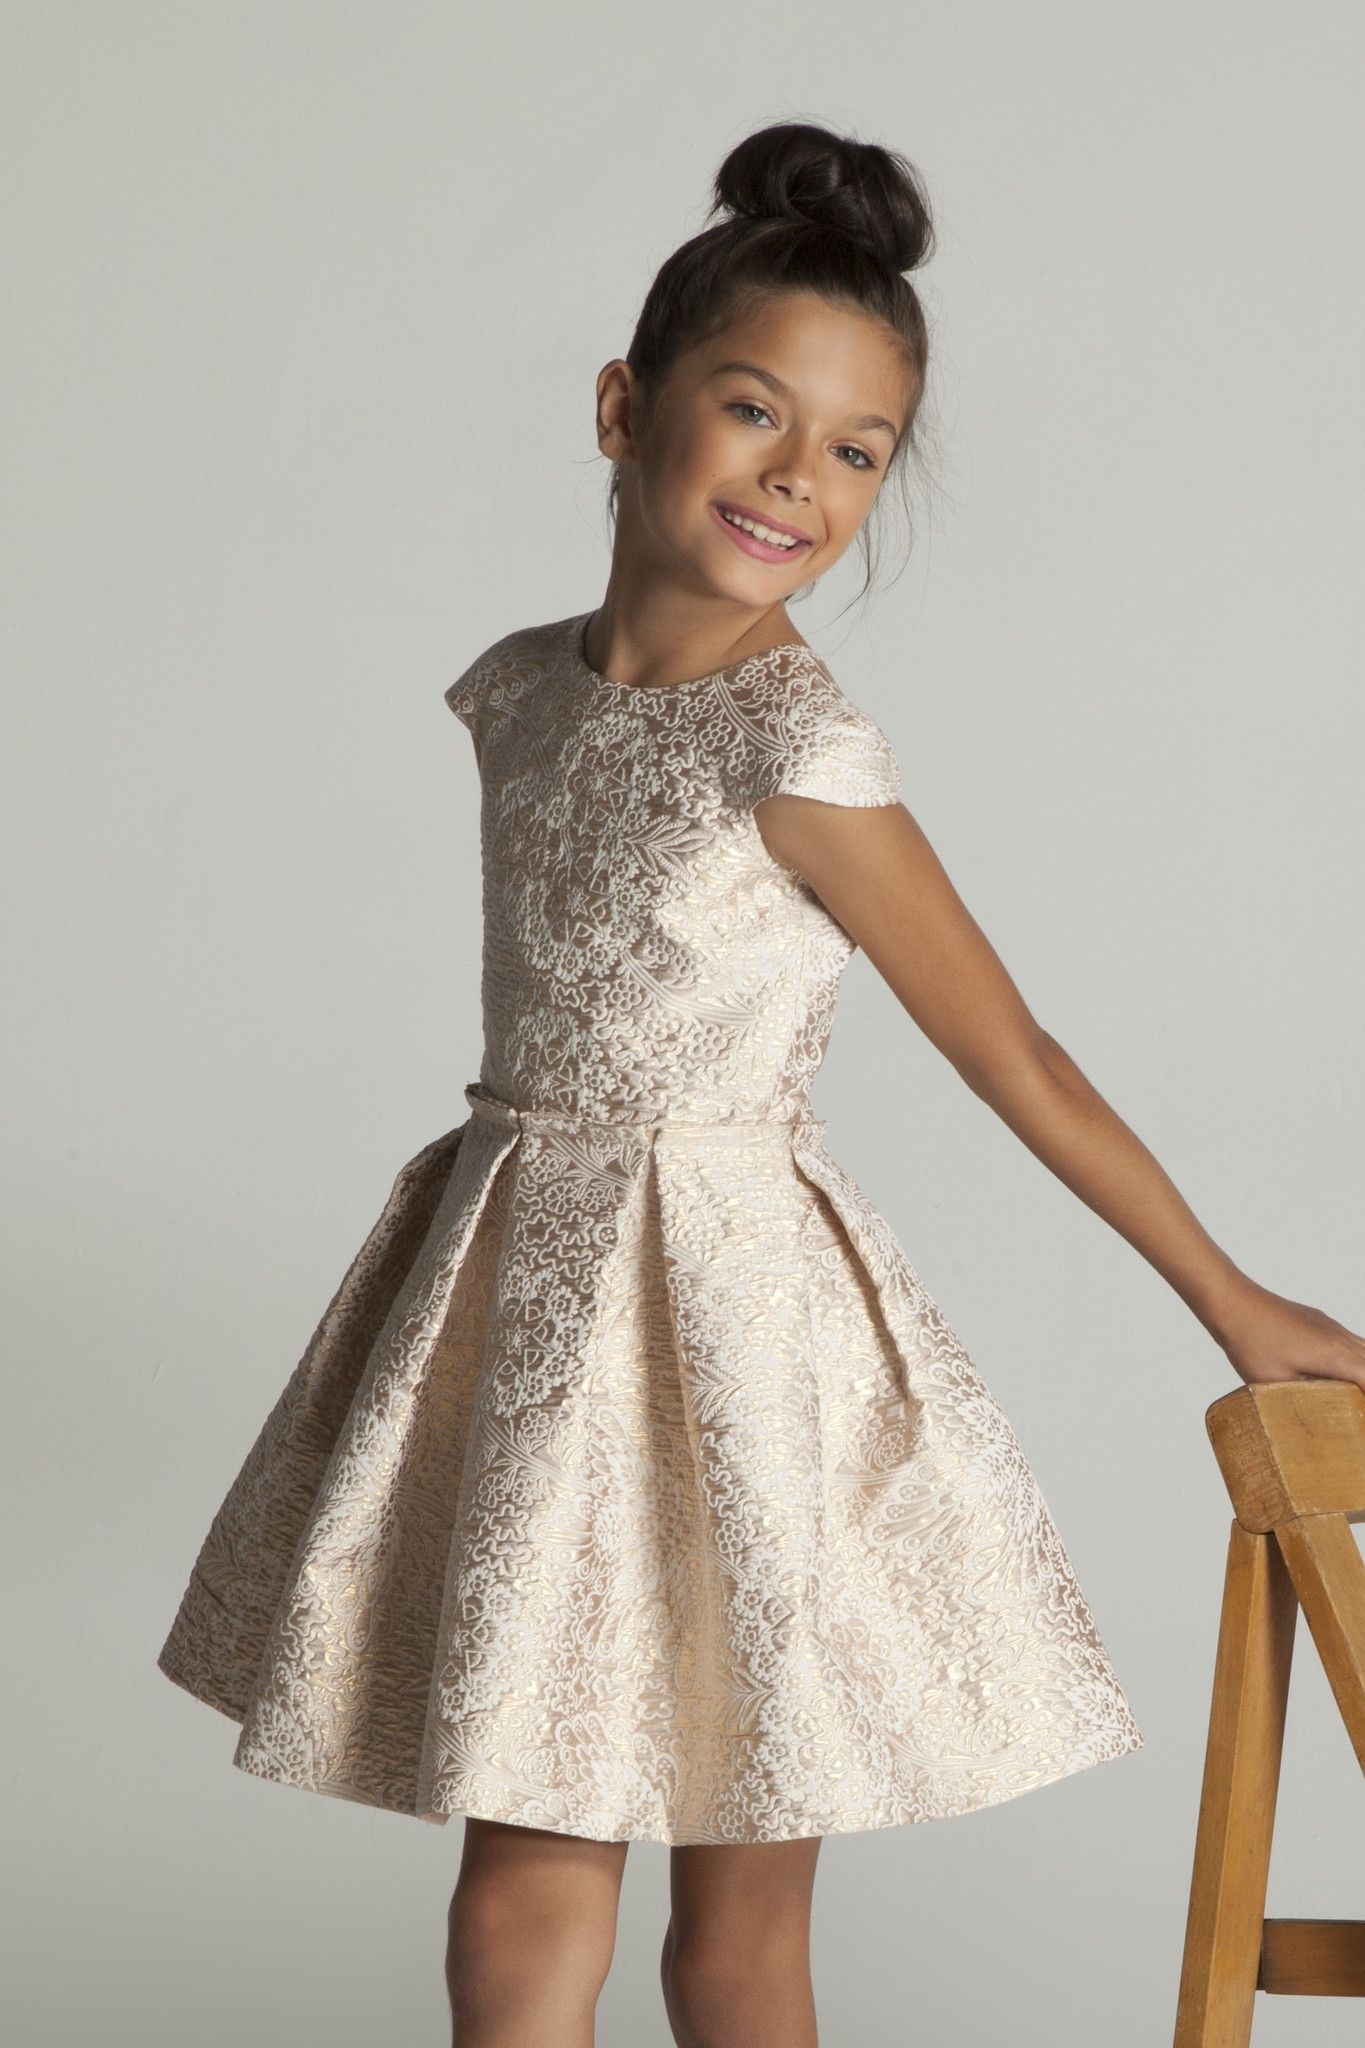 Imperial ballerina dress ballerina dress ballerina and girls